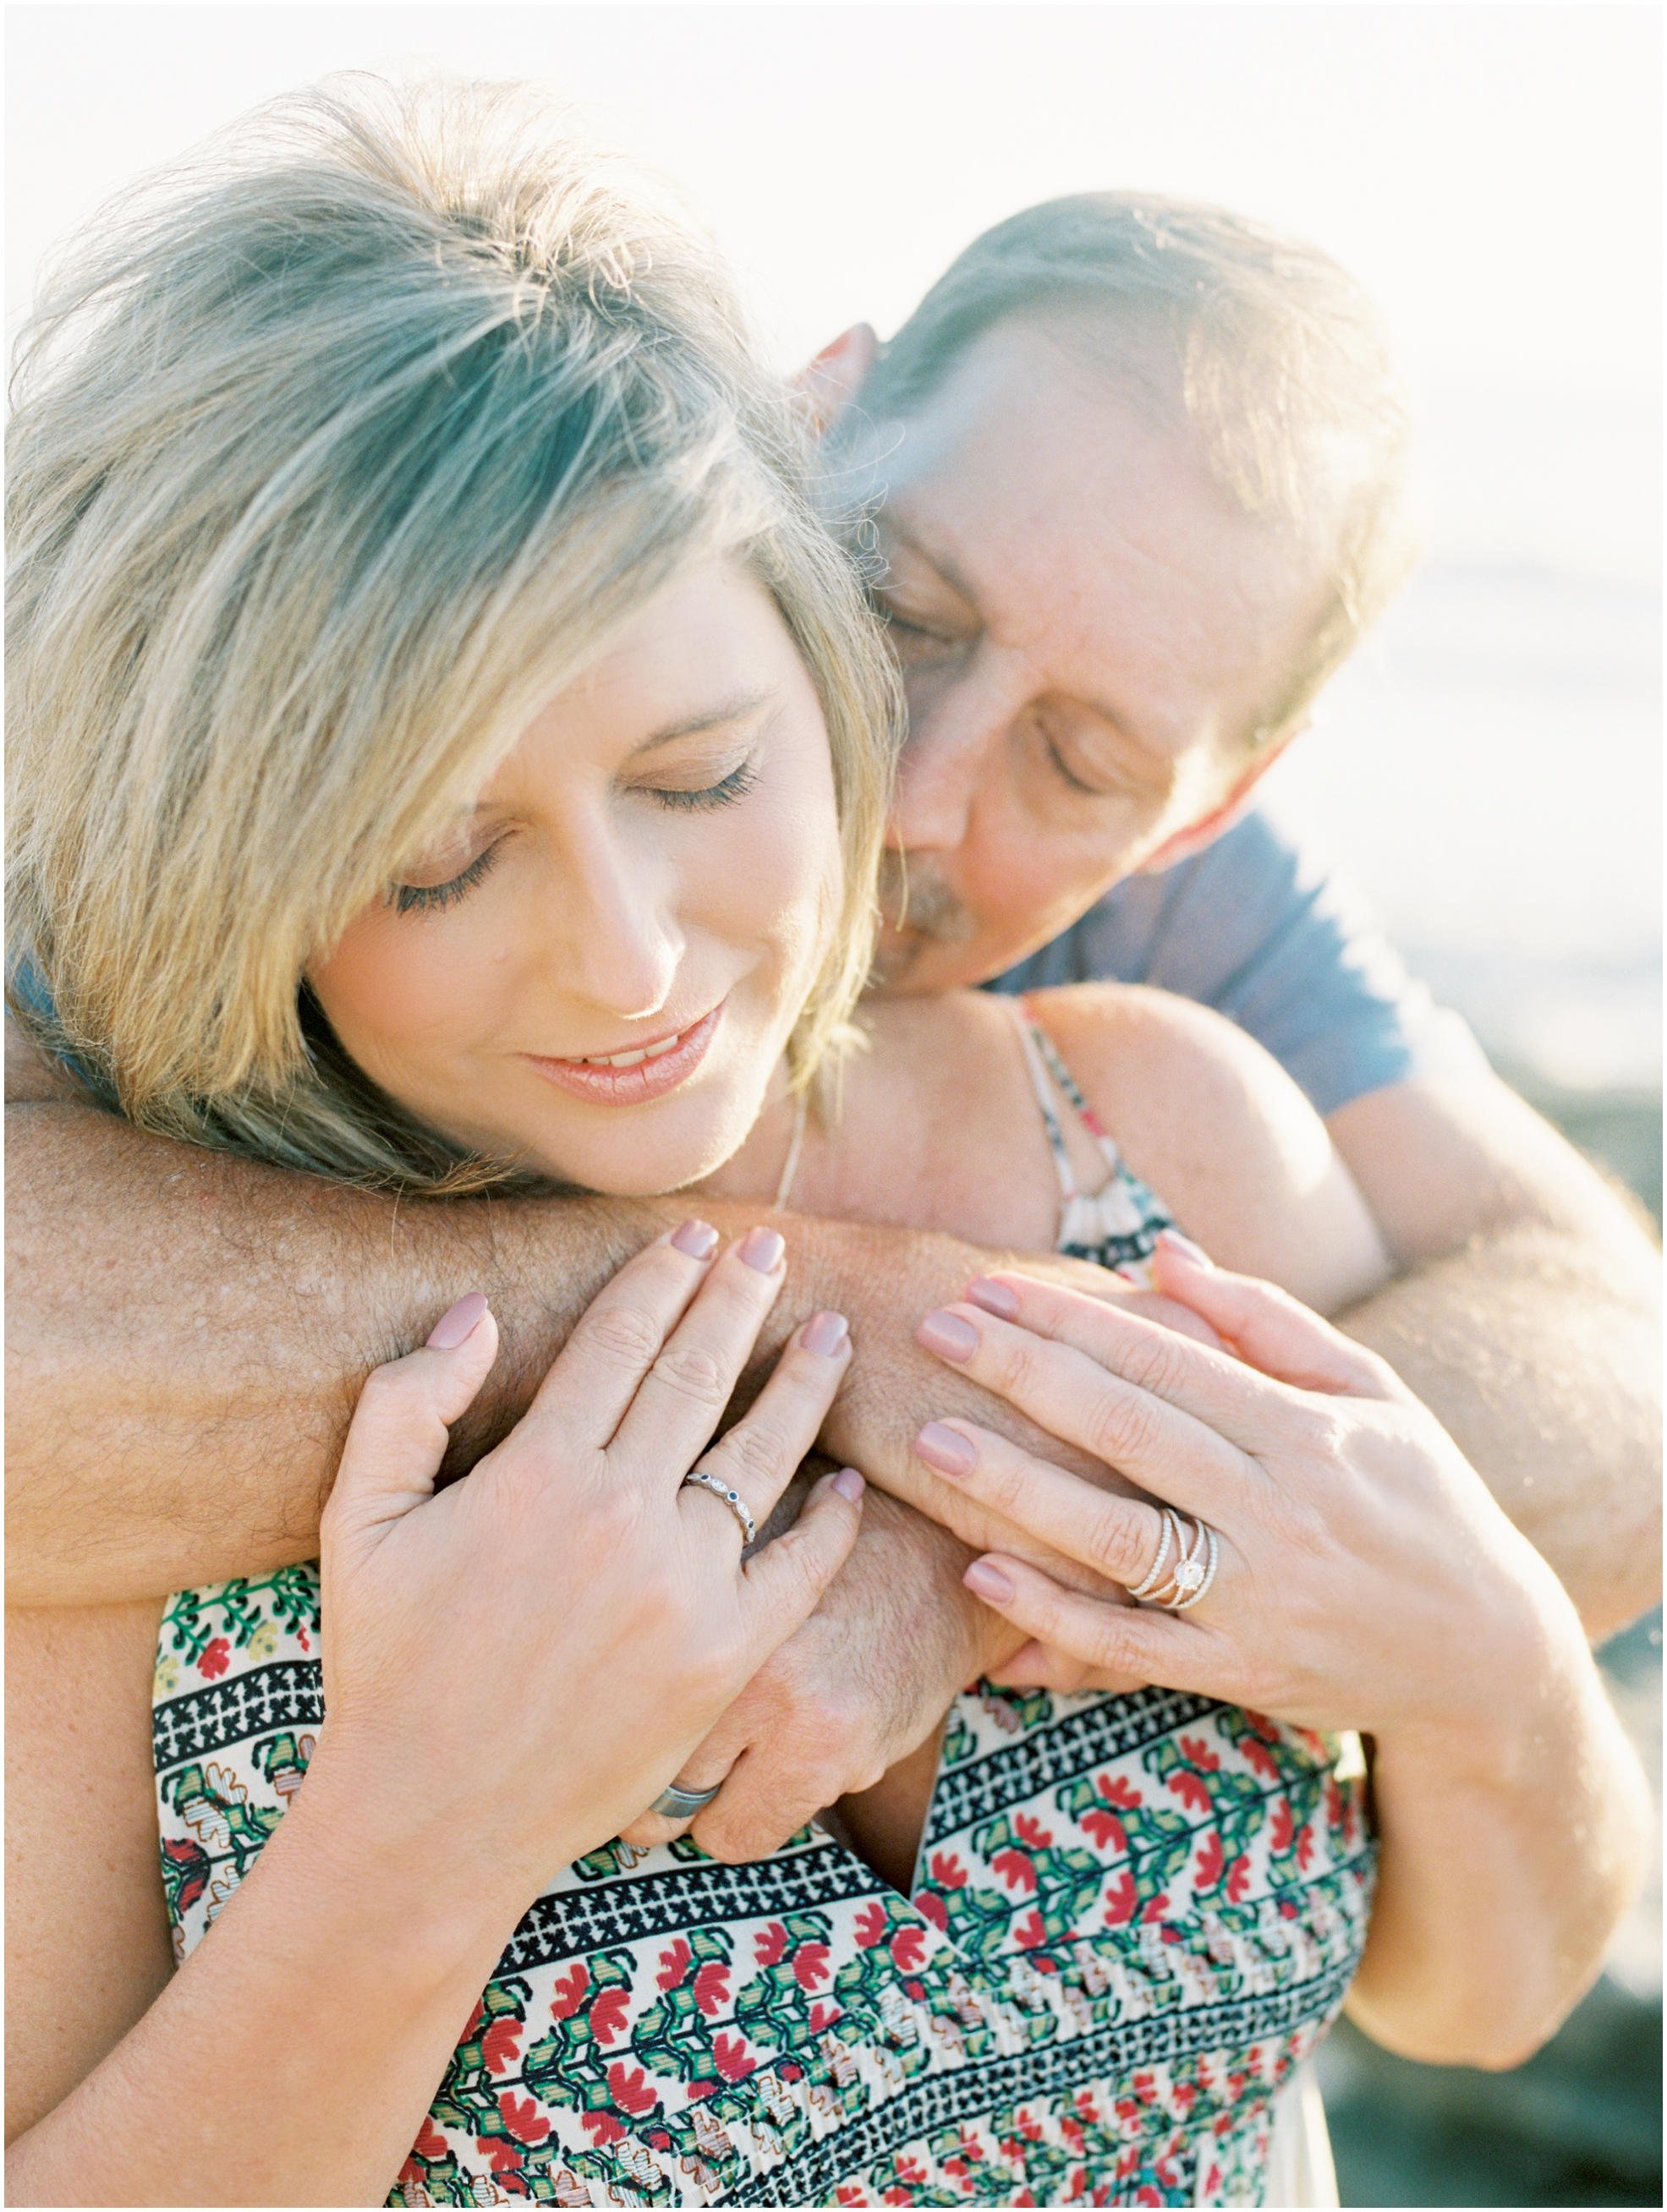 Lisa Silva Photography- Jacksonville, St. Augustine, Amelia Island, Ponte Vedra Beach, North East Florida Fine Art Film Photographer- Anniversary Session at Washington Oaks in Palm Coast, Florida_0009.jpg